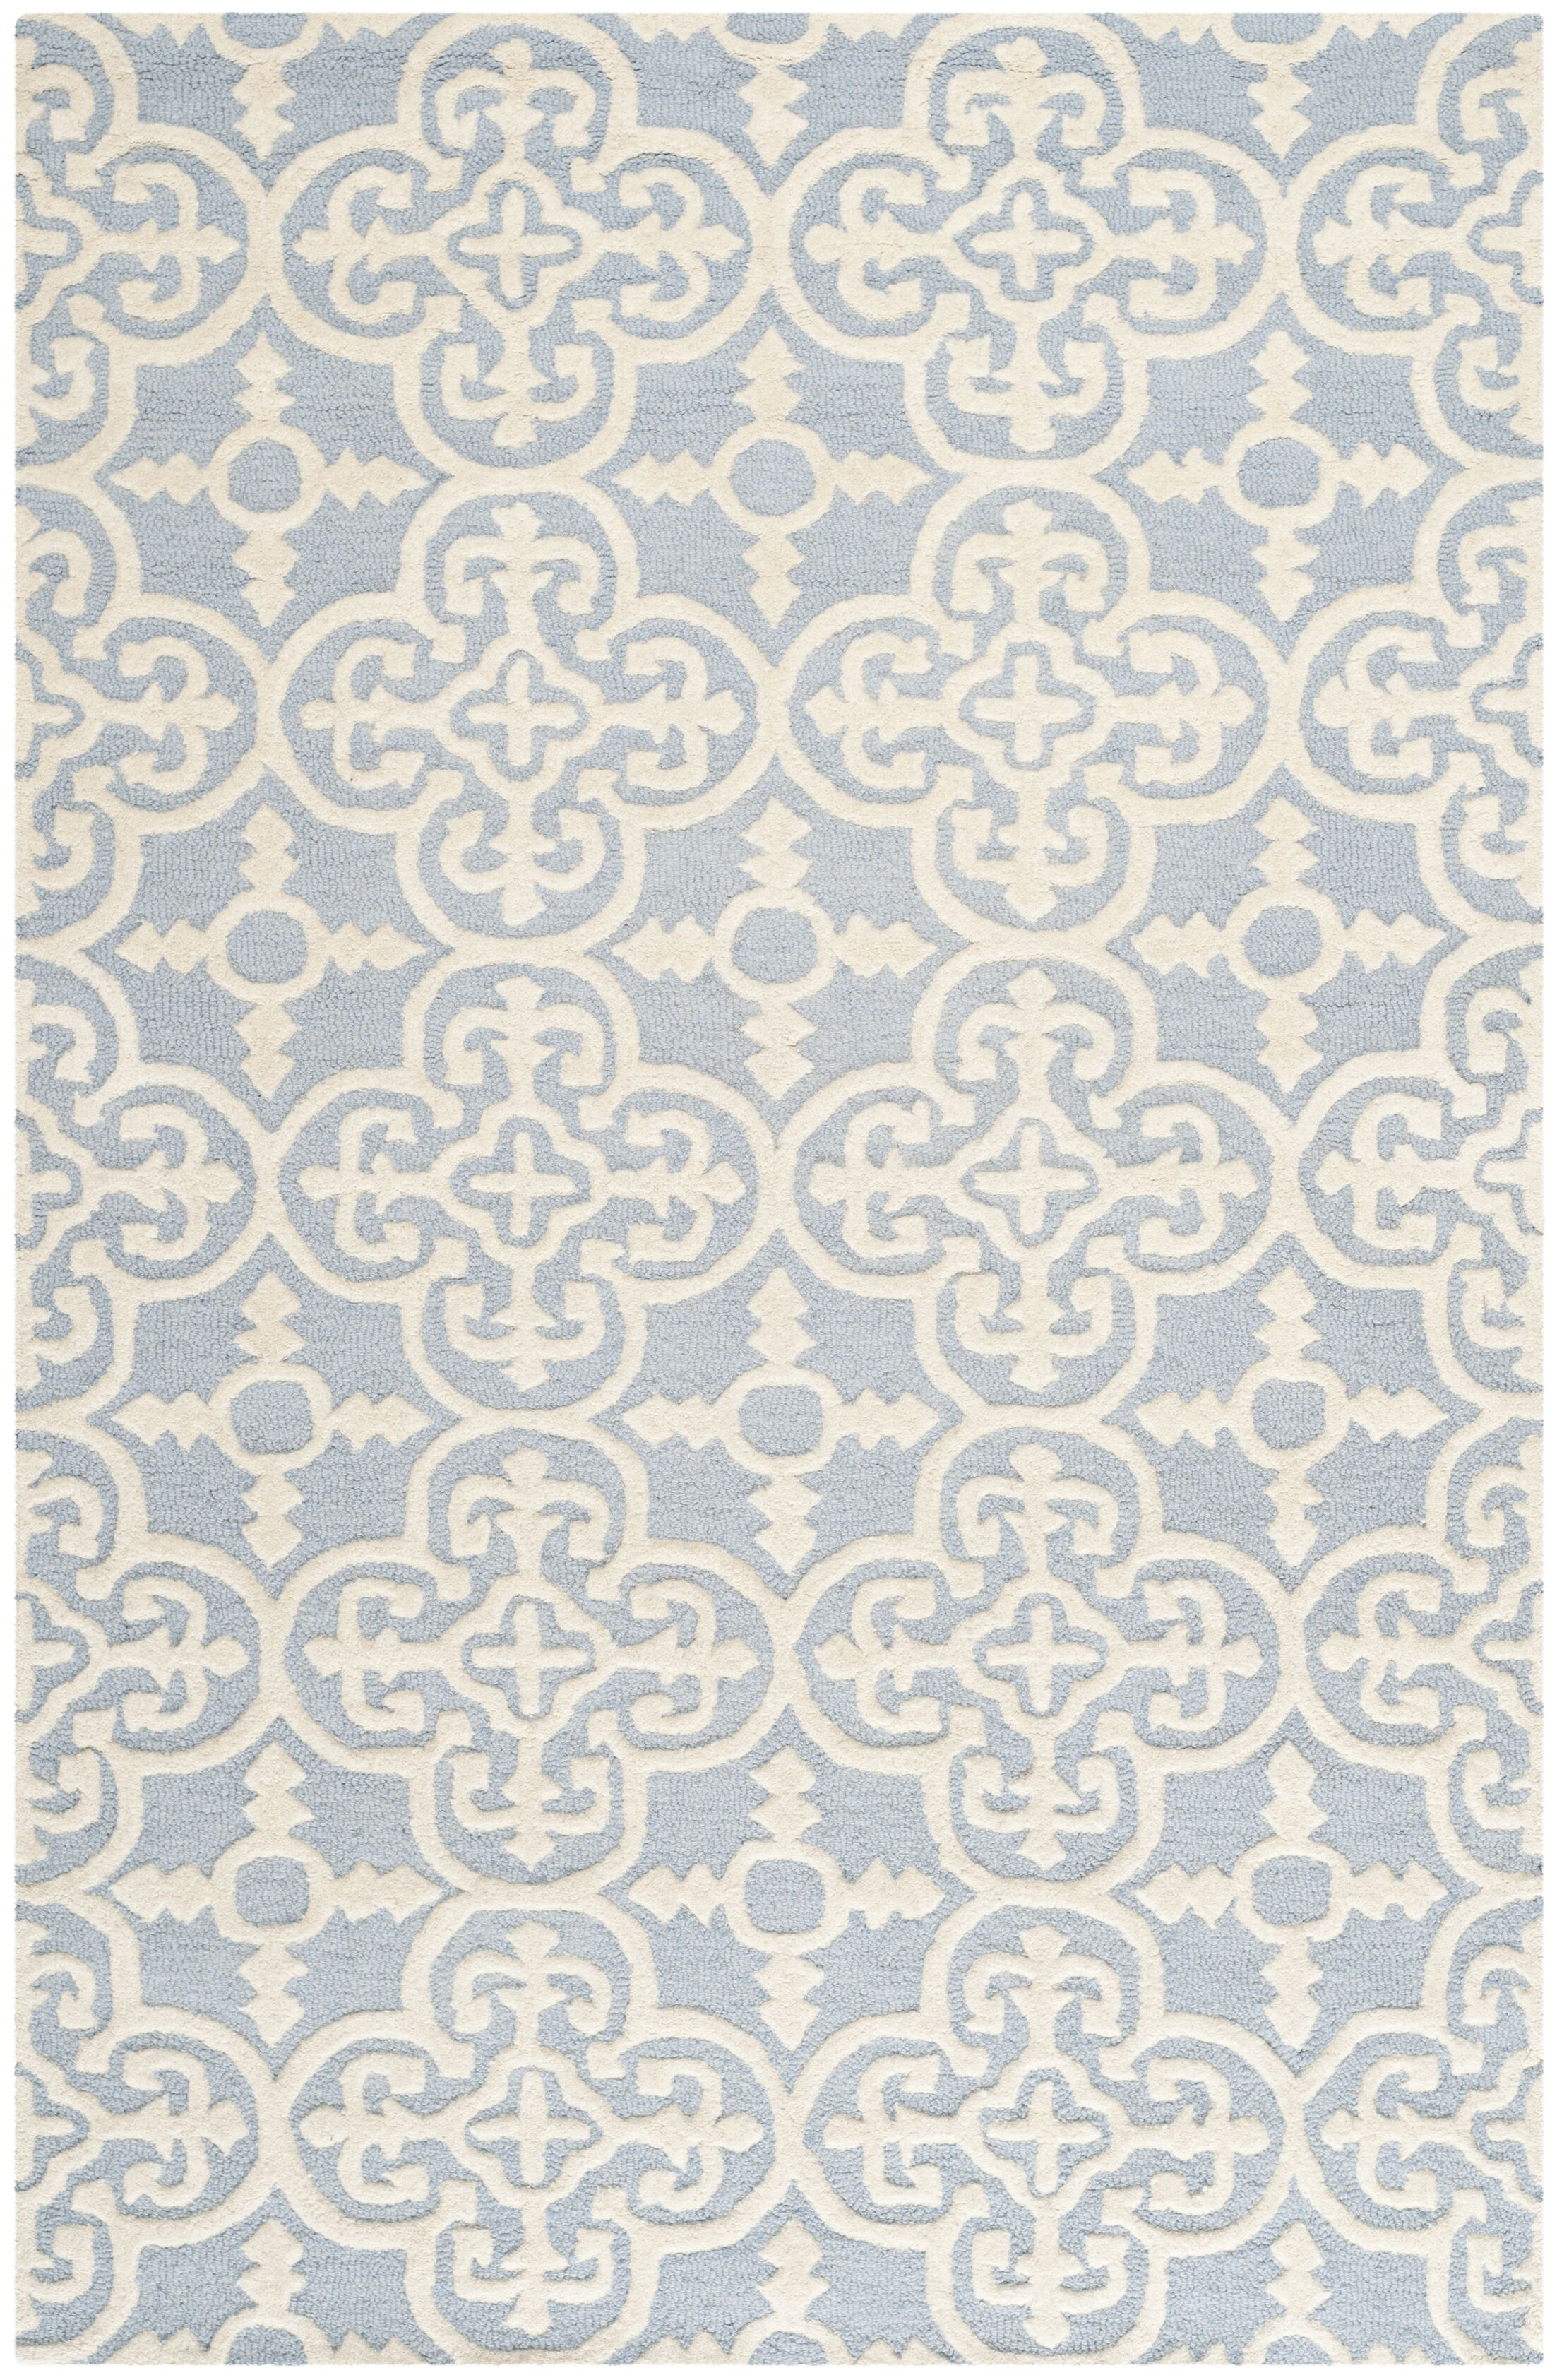 Marlen Light Blue & Ivory Area Rug Rug Size: Rectangle 11' x 15'